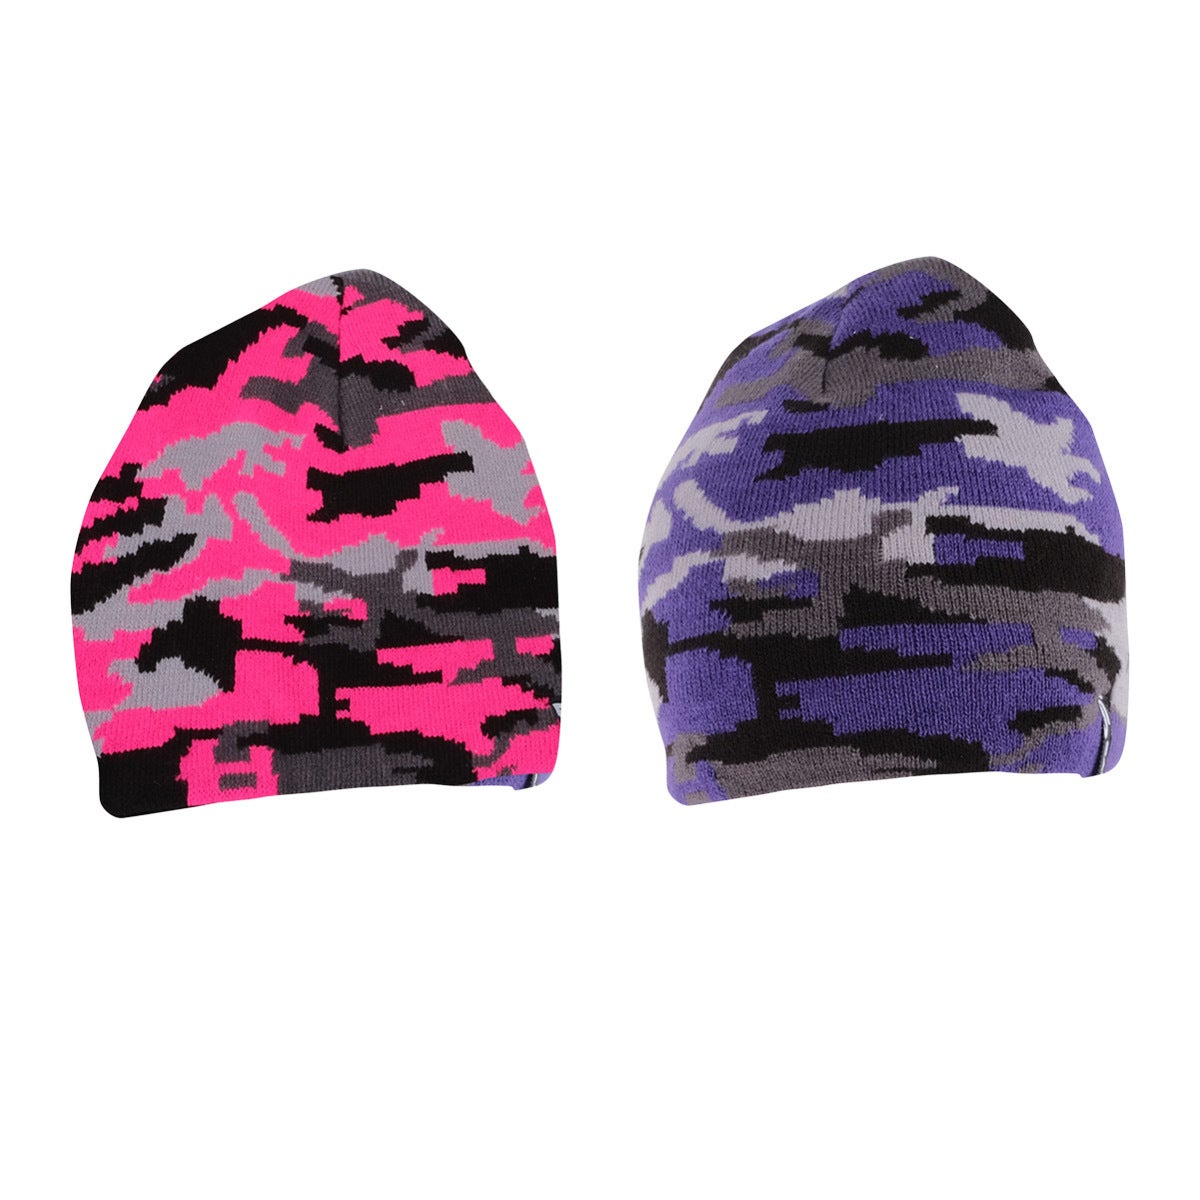 2PK Beanies Women's Thermal Knitted Camouflage Design Warm Soft 2 Colours